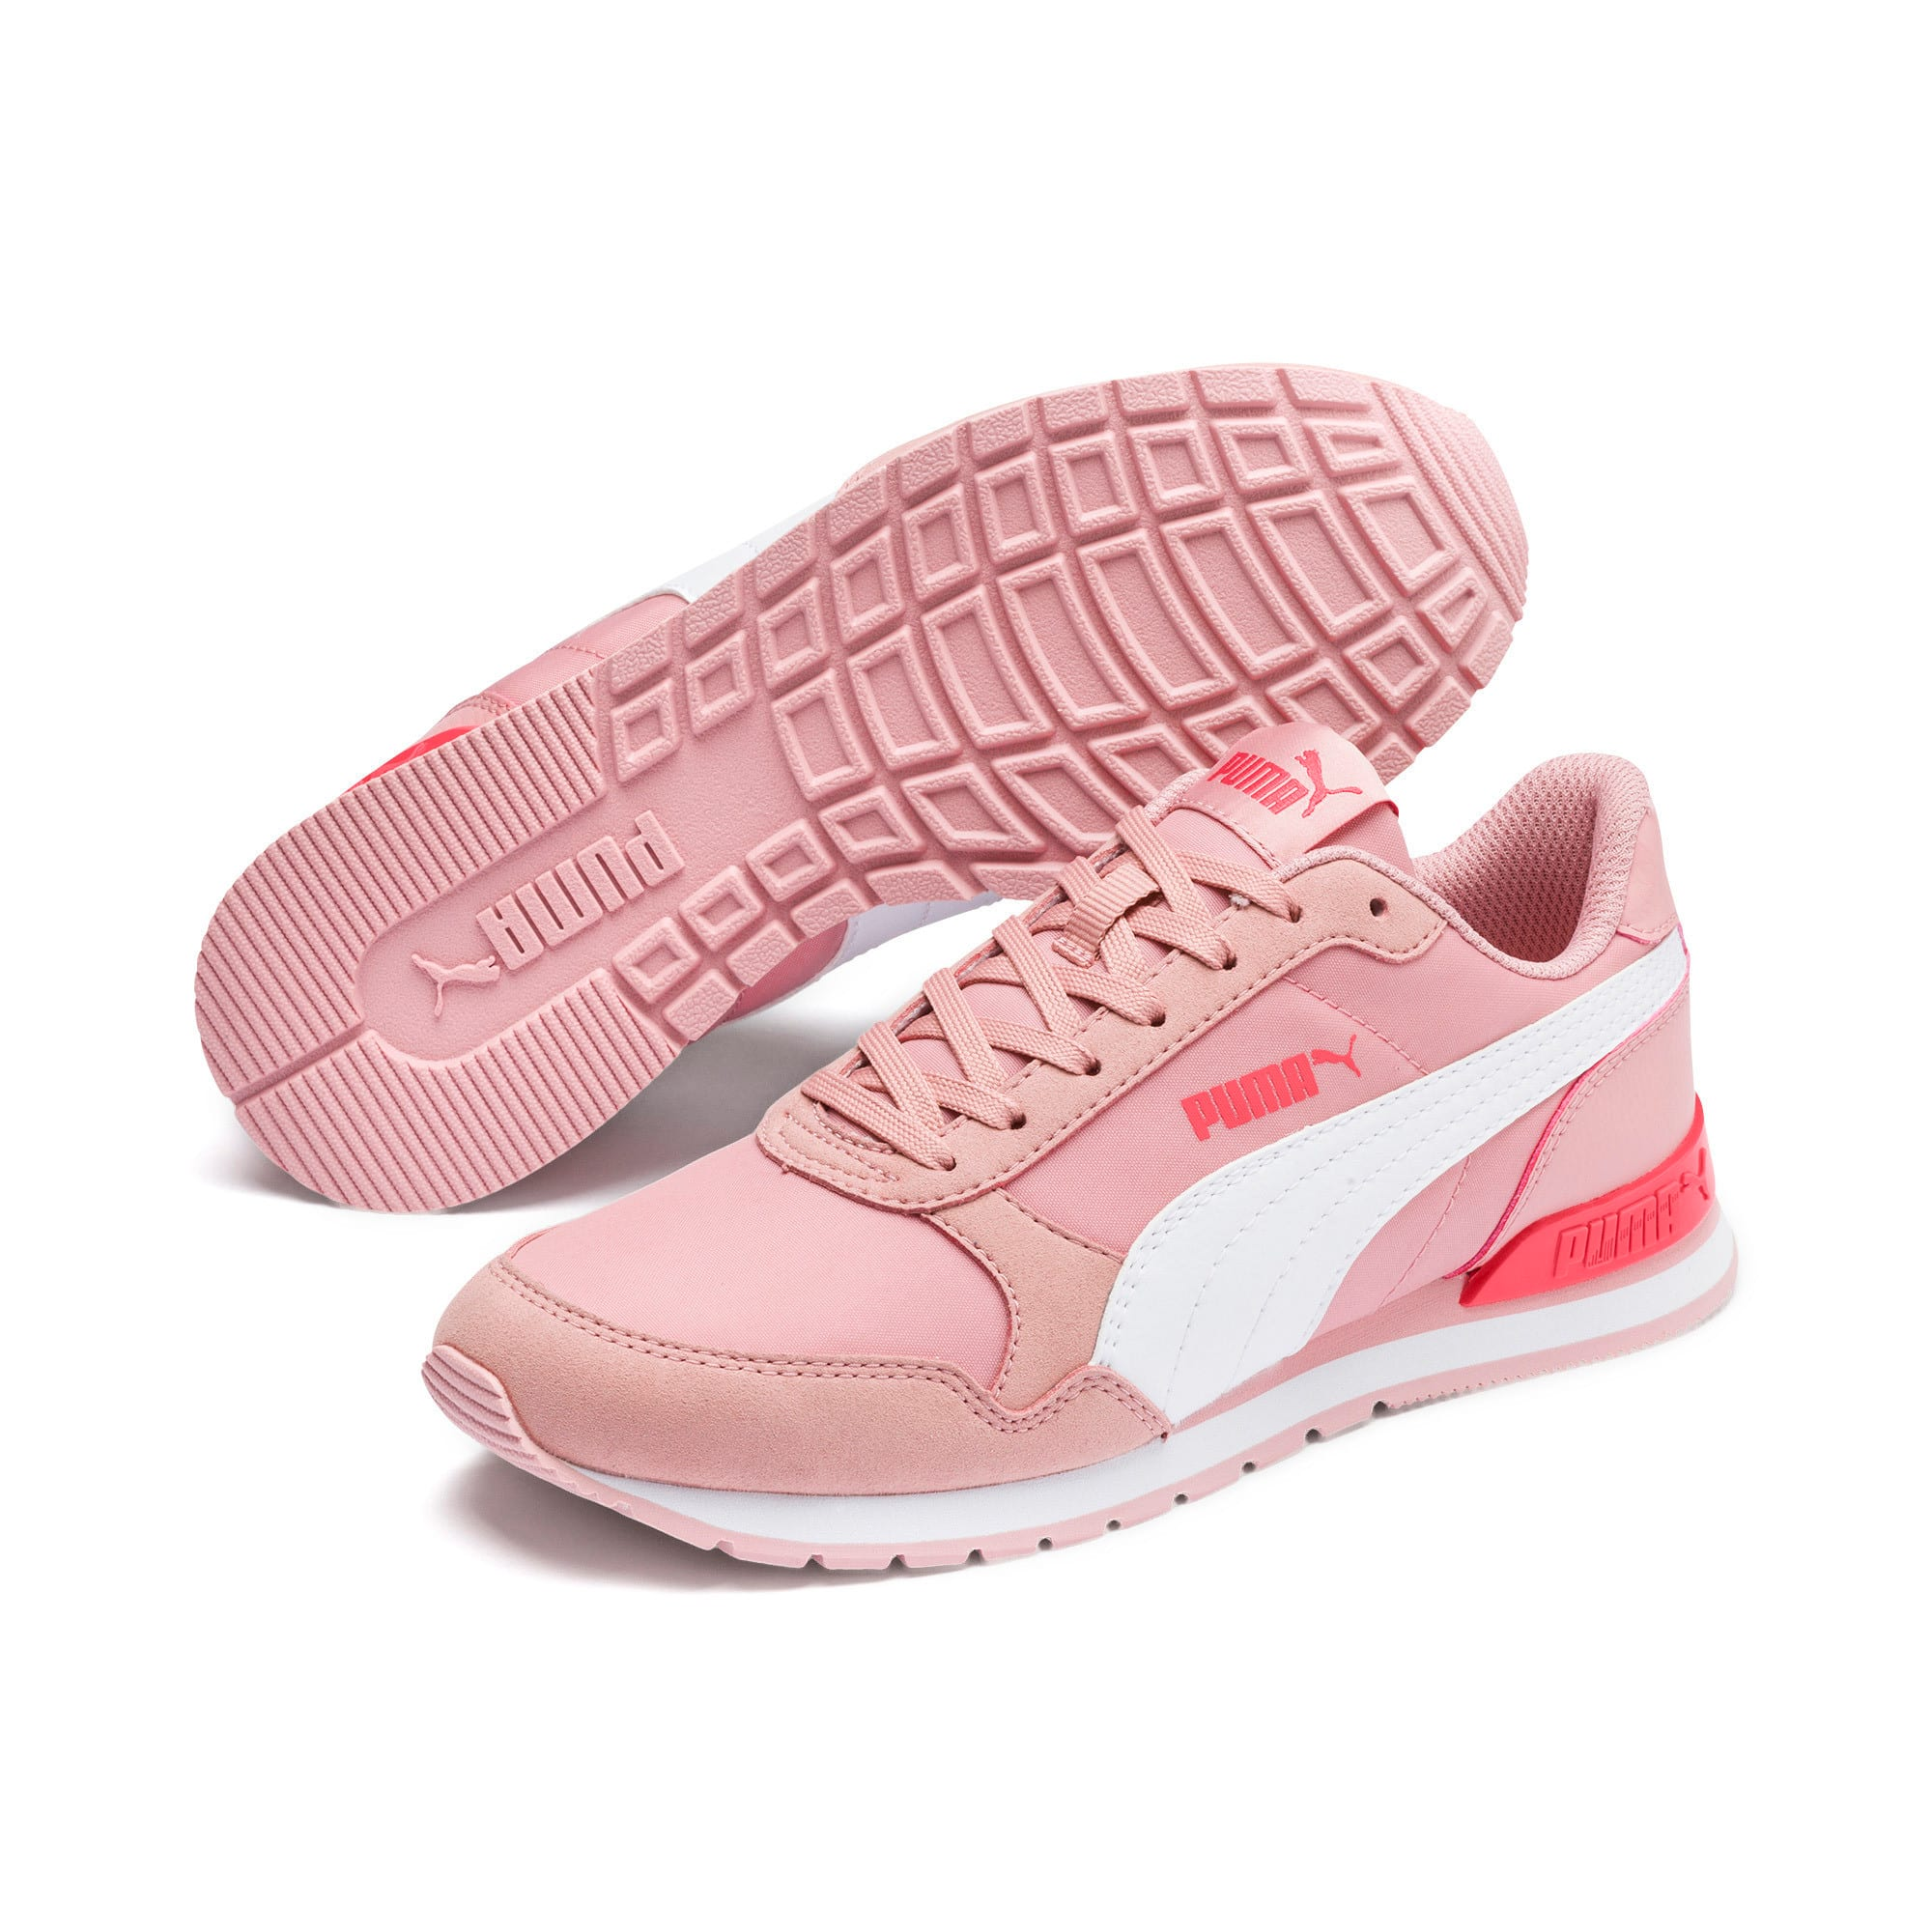 Thumbnail 2 of ST Runner v2 NL Sneakers JR, Bridal Rose-Puma White, medium